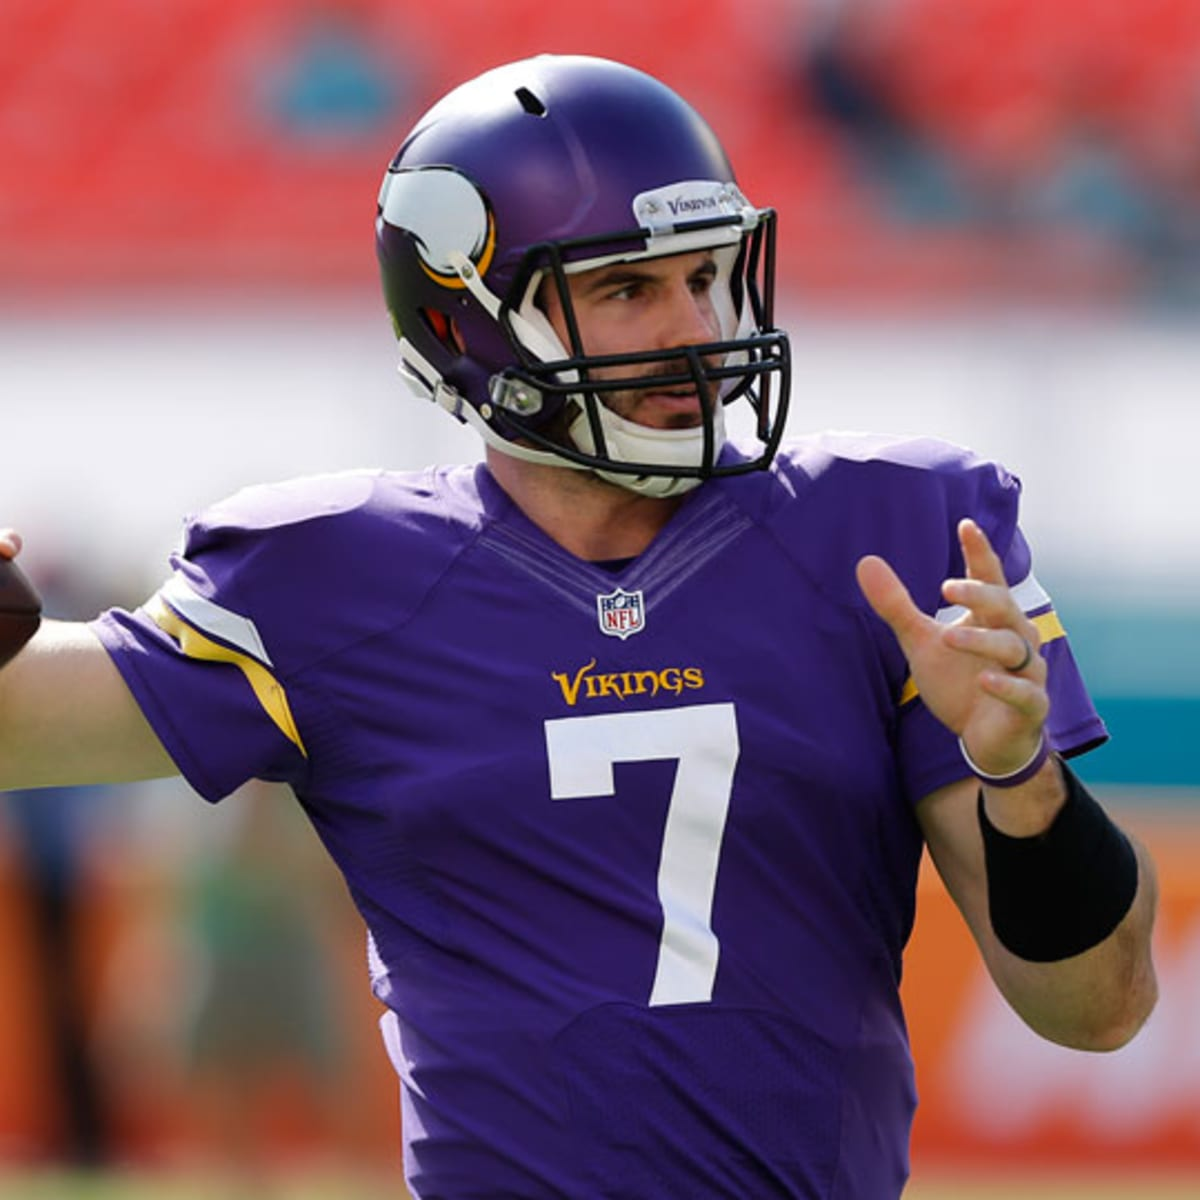 Raiders sign QB Christian Ponder to one-year deal - Sports Illustrated